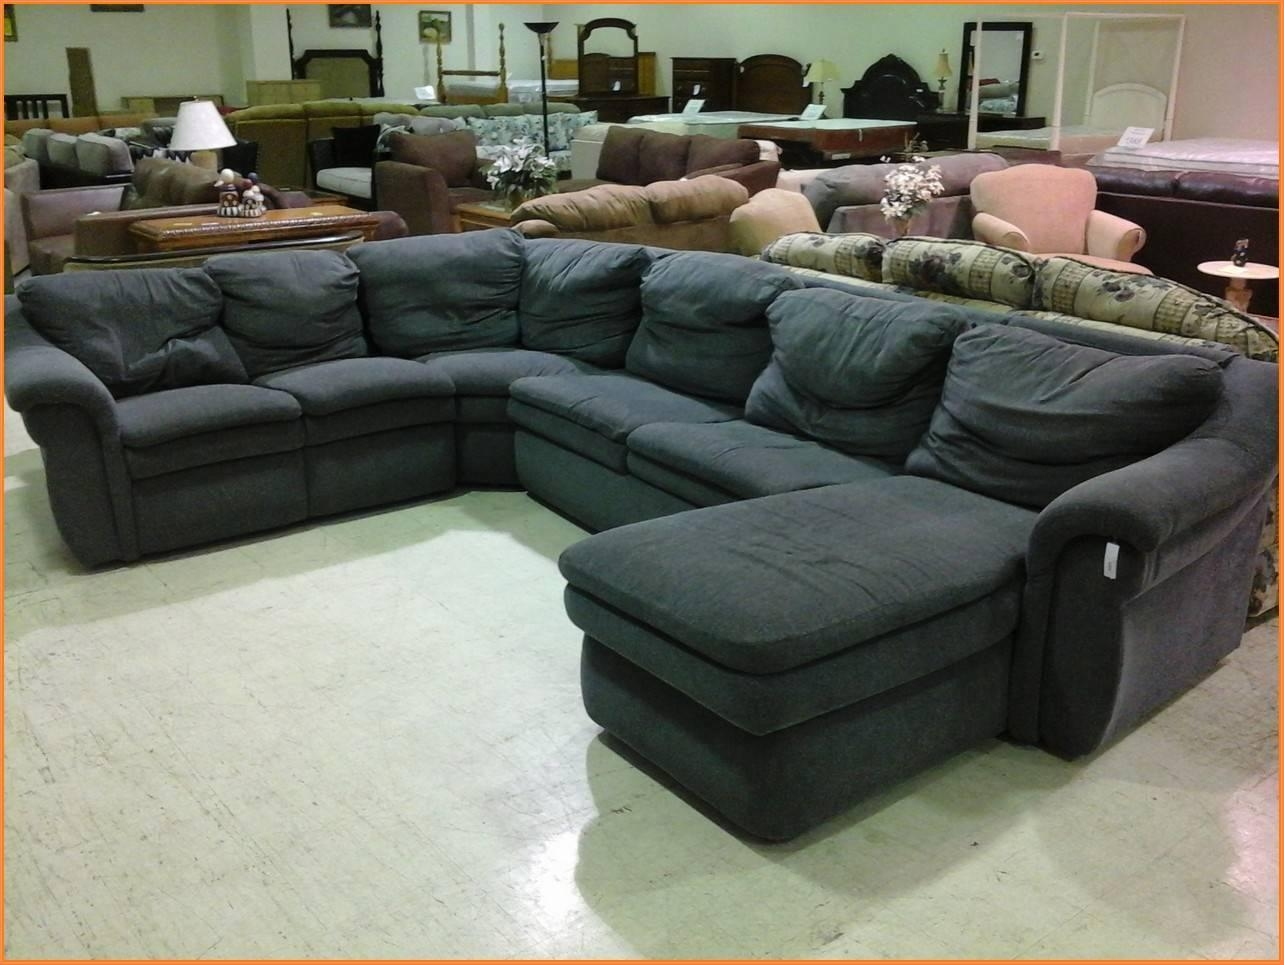 Sofas Center : Inspirational Lazy Boy Sectional Sofa In Office Intended For Lazyboy Sectional Sofas (Image 15 of 20)